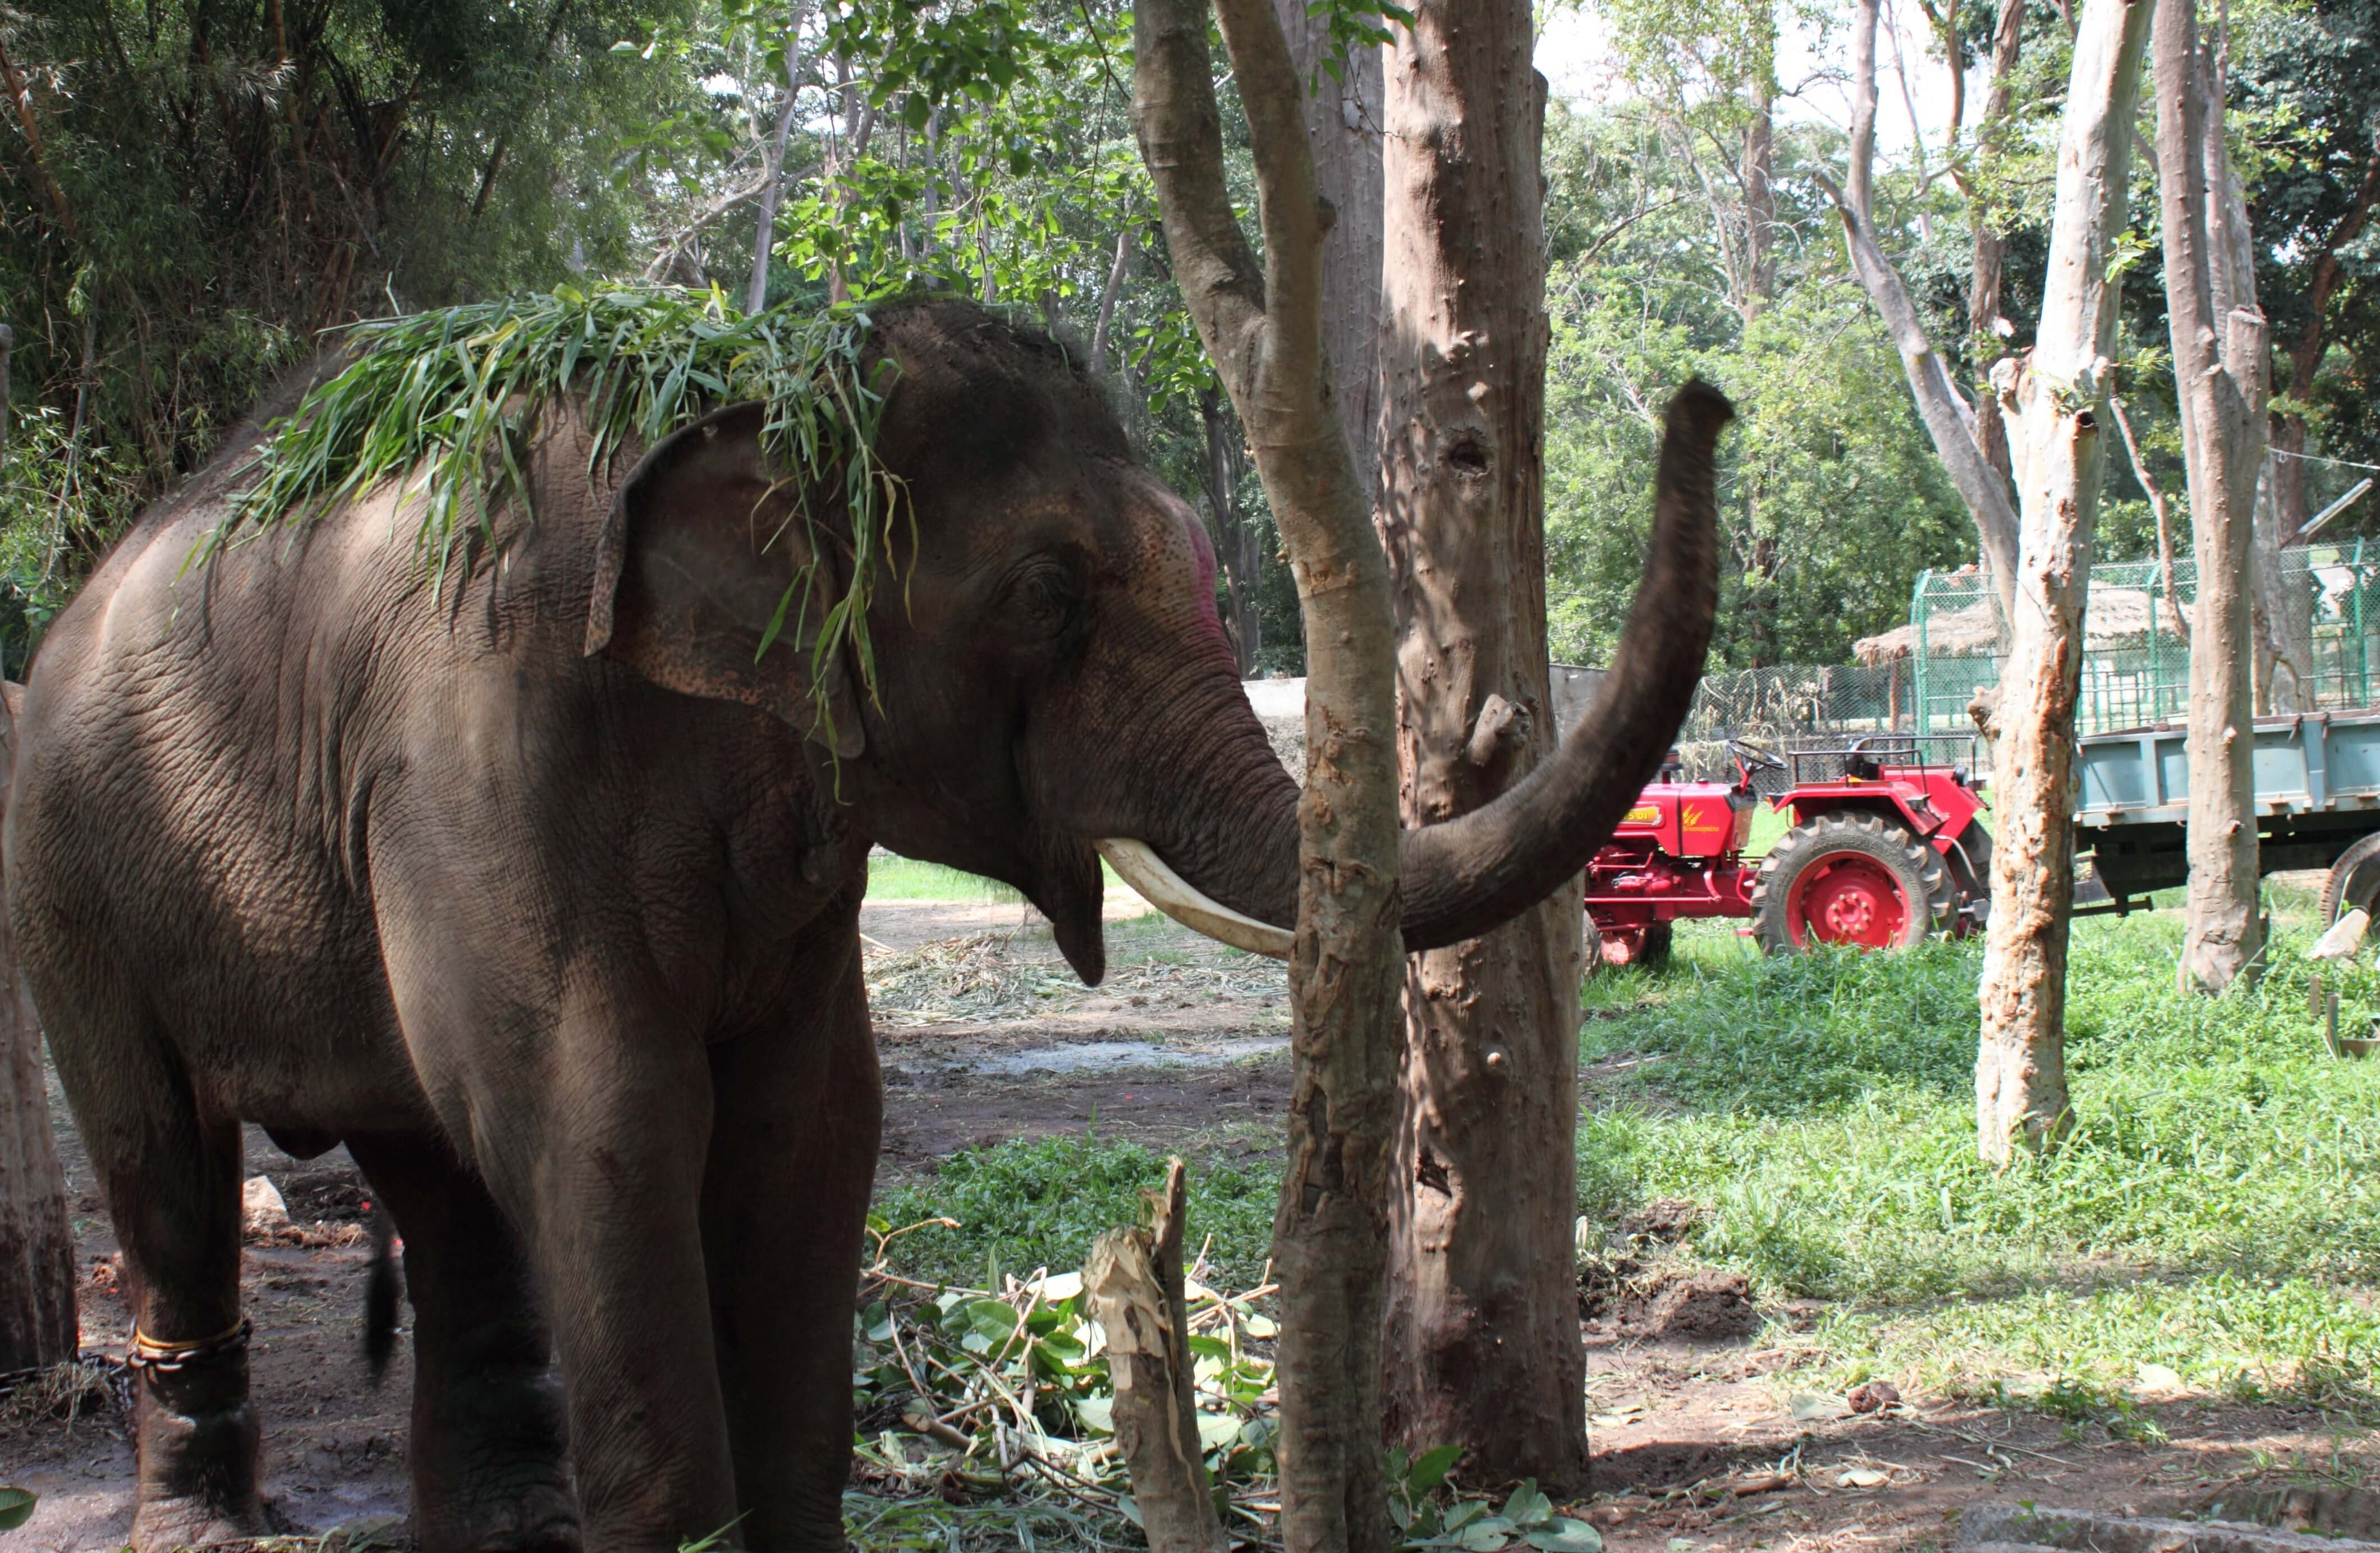 So that Sunder does not have to remain restrained during this process and while he's getting used to the park, officials there have given PETA permission to build an enclosure in which he can be treated but still walk around.